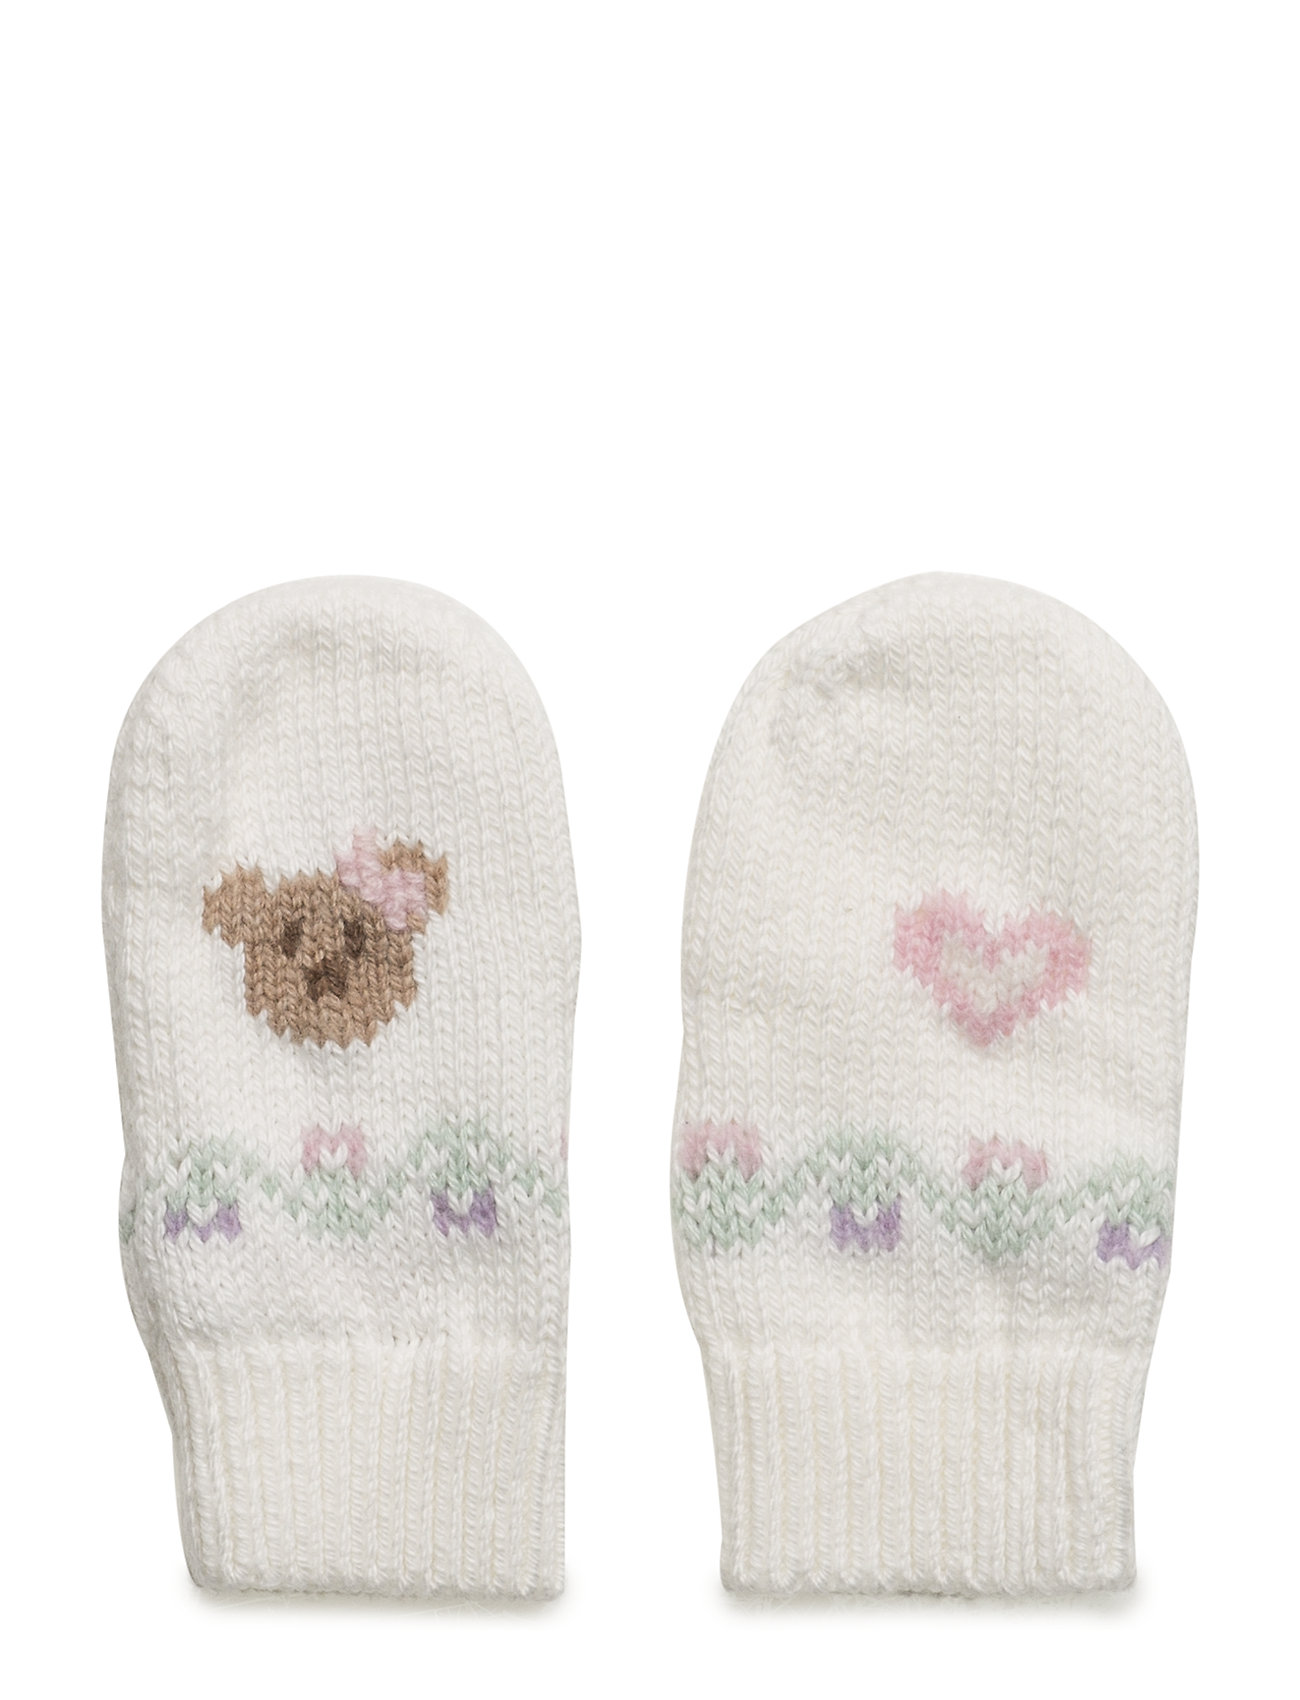 Intarsia Cotton-wool Mittens (Trophy Cream) (£40.05) - Ralph Lauren ... 4fda5e54b65